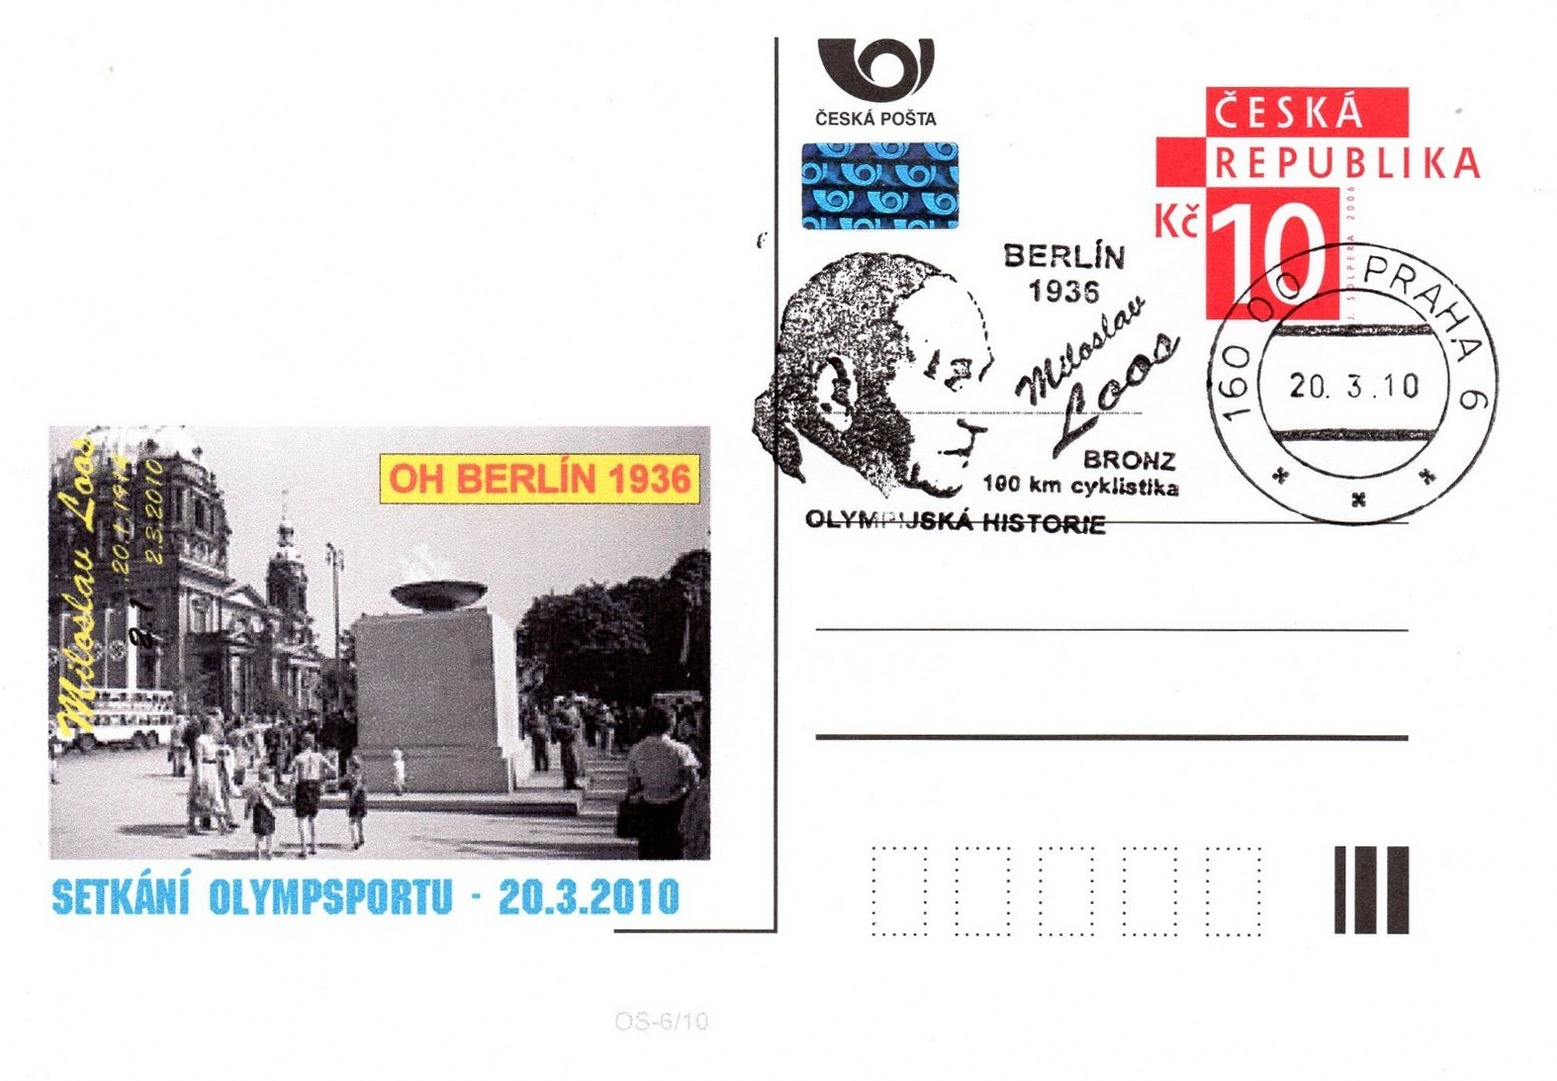 Postal-Stationeries- Czech-private-printing-Miloslav-Loos-2010-bicycle-stamp-velo-timbre-Fahrrad-Briefmarke-Philatelie